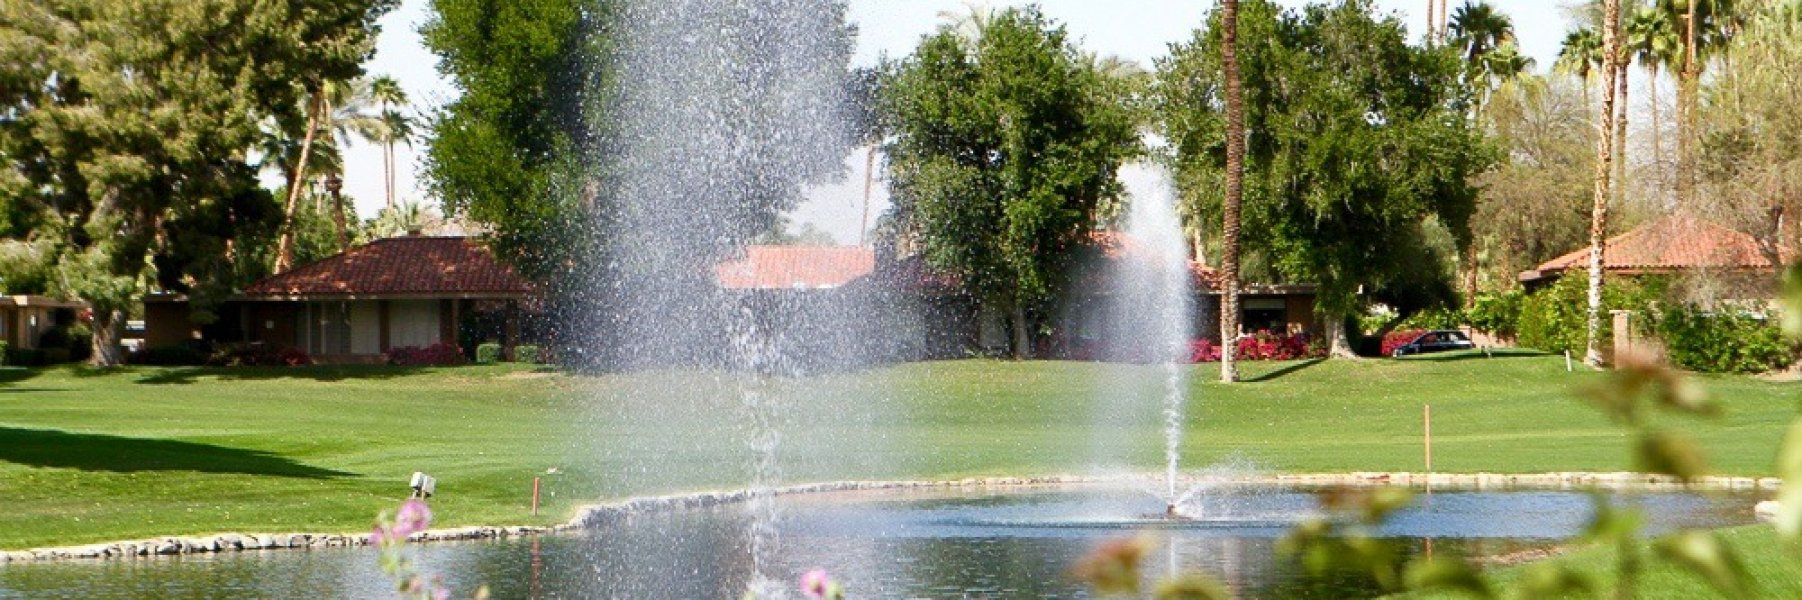 Sunrise Country Club is a community of homes in Rancho Mirage California